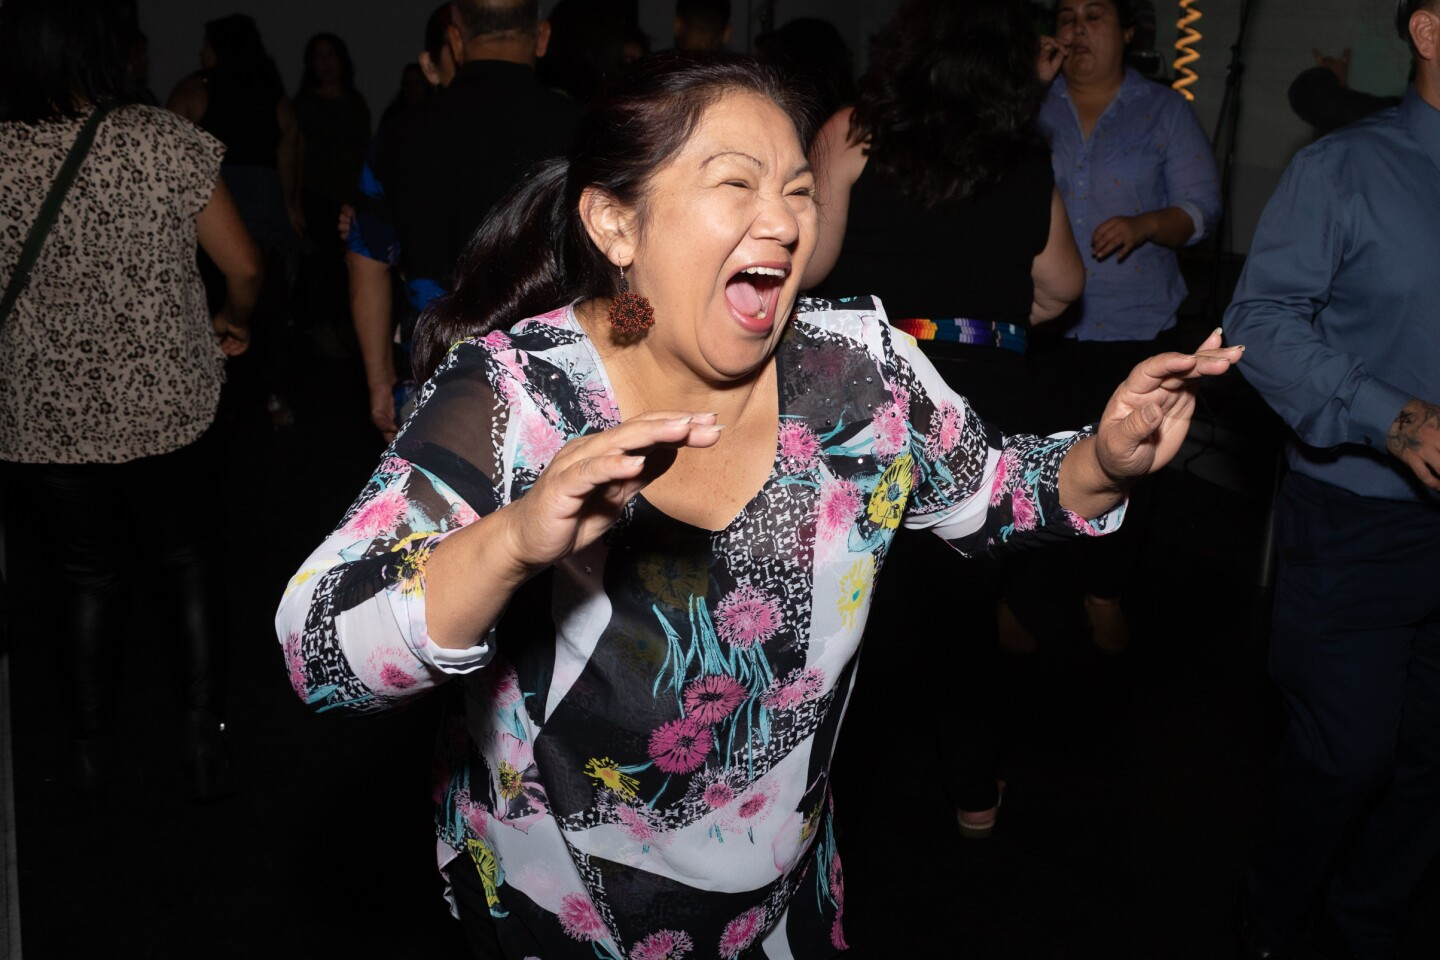 A lady in a flower shirt expresses joy at Cumbiatón.